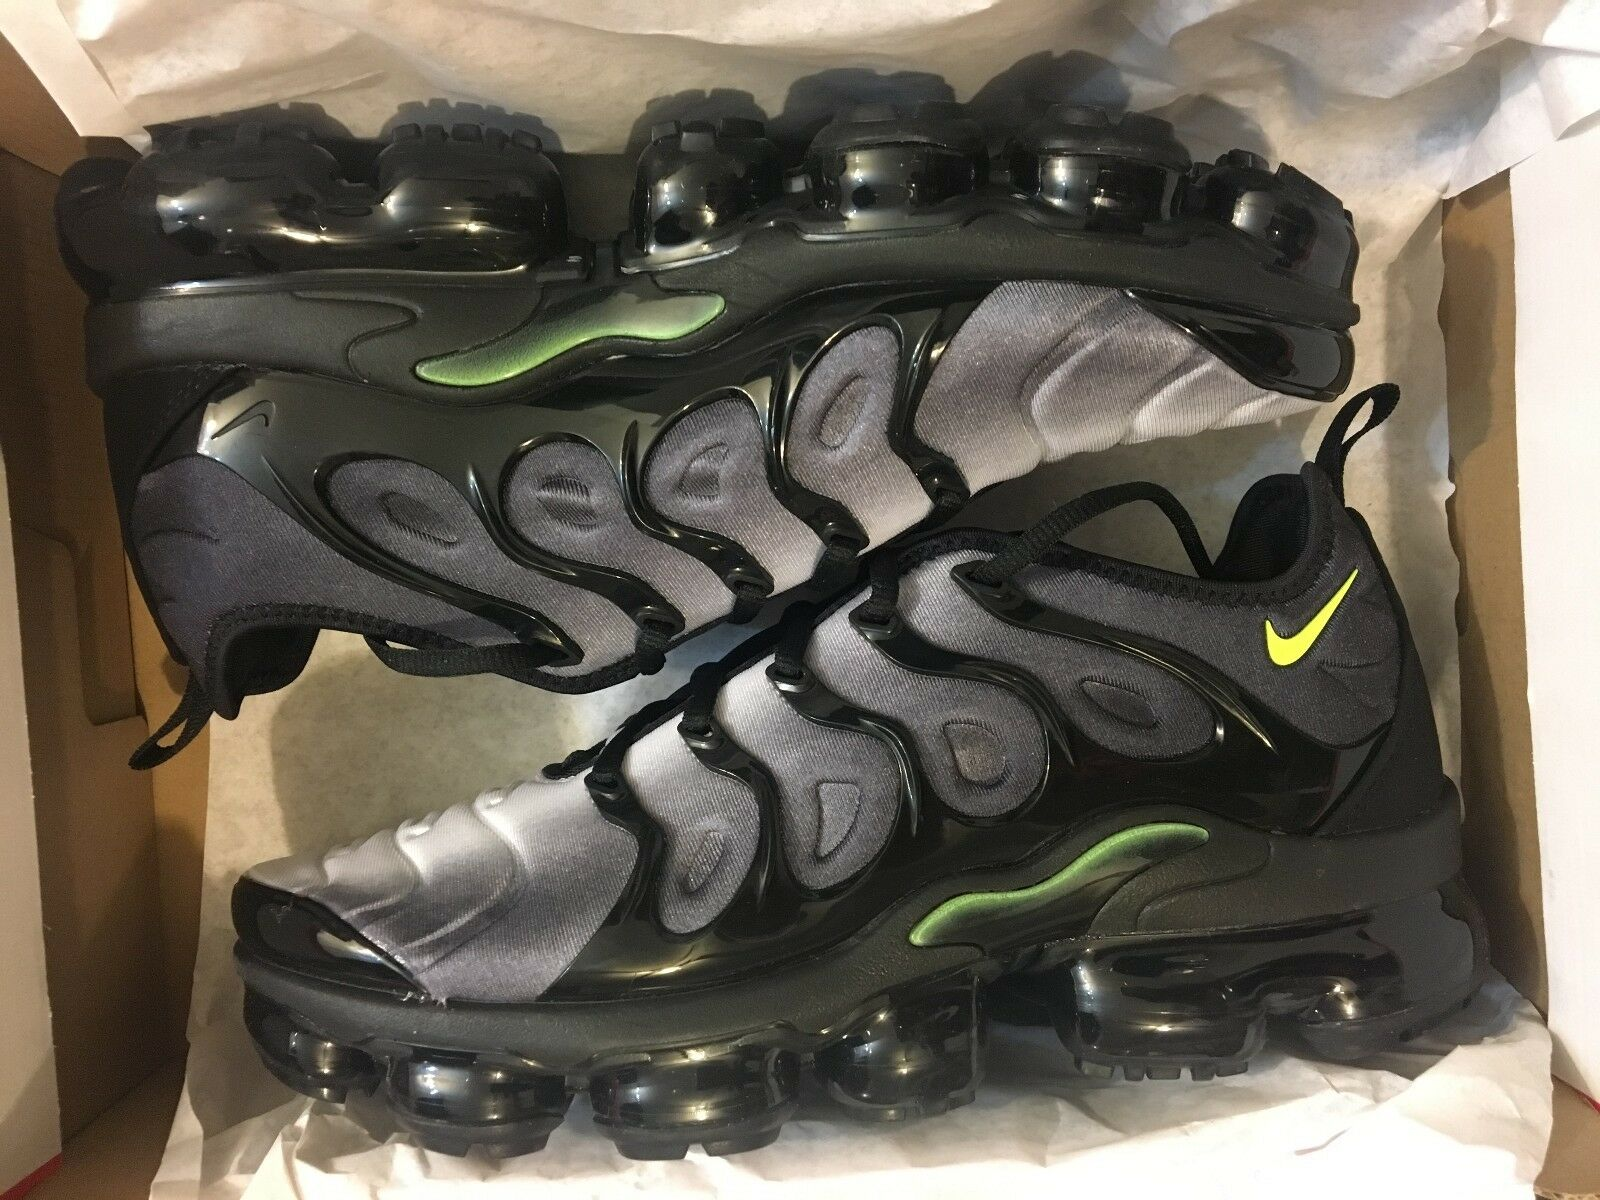 NEW NIKE AIR VAPORMAX PLUS BLACK VOLT WHITE RUNNING SHOE 924453-009 MEN SIZE 8 Special limited time